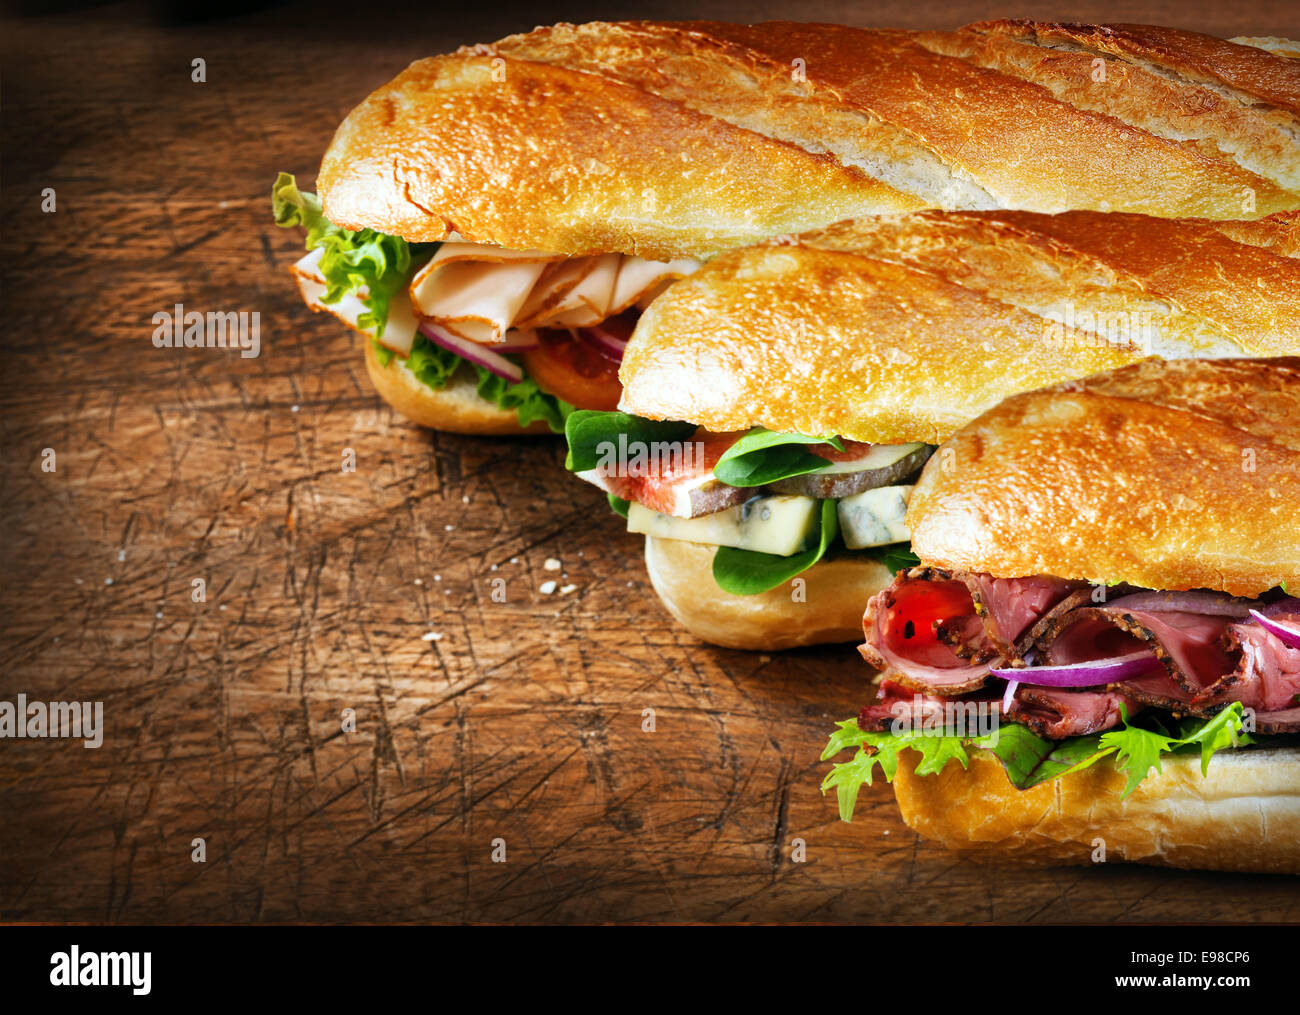 Three tasty baguettes with savory fillings lined up on a rustic wooden countertop with roast beef and rocket, figs - Stock Image